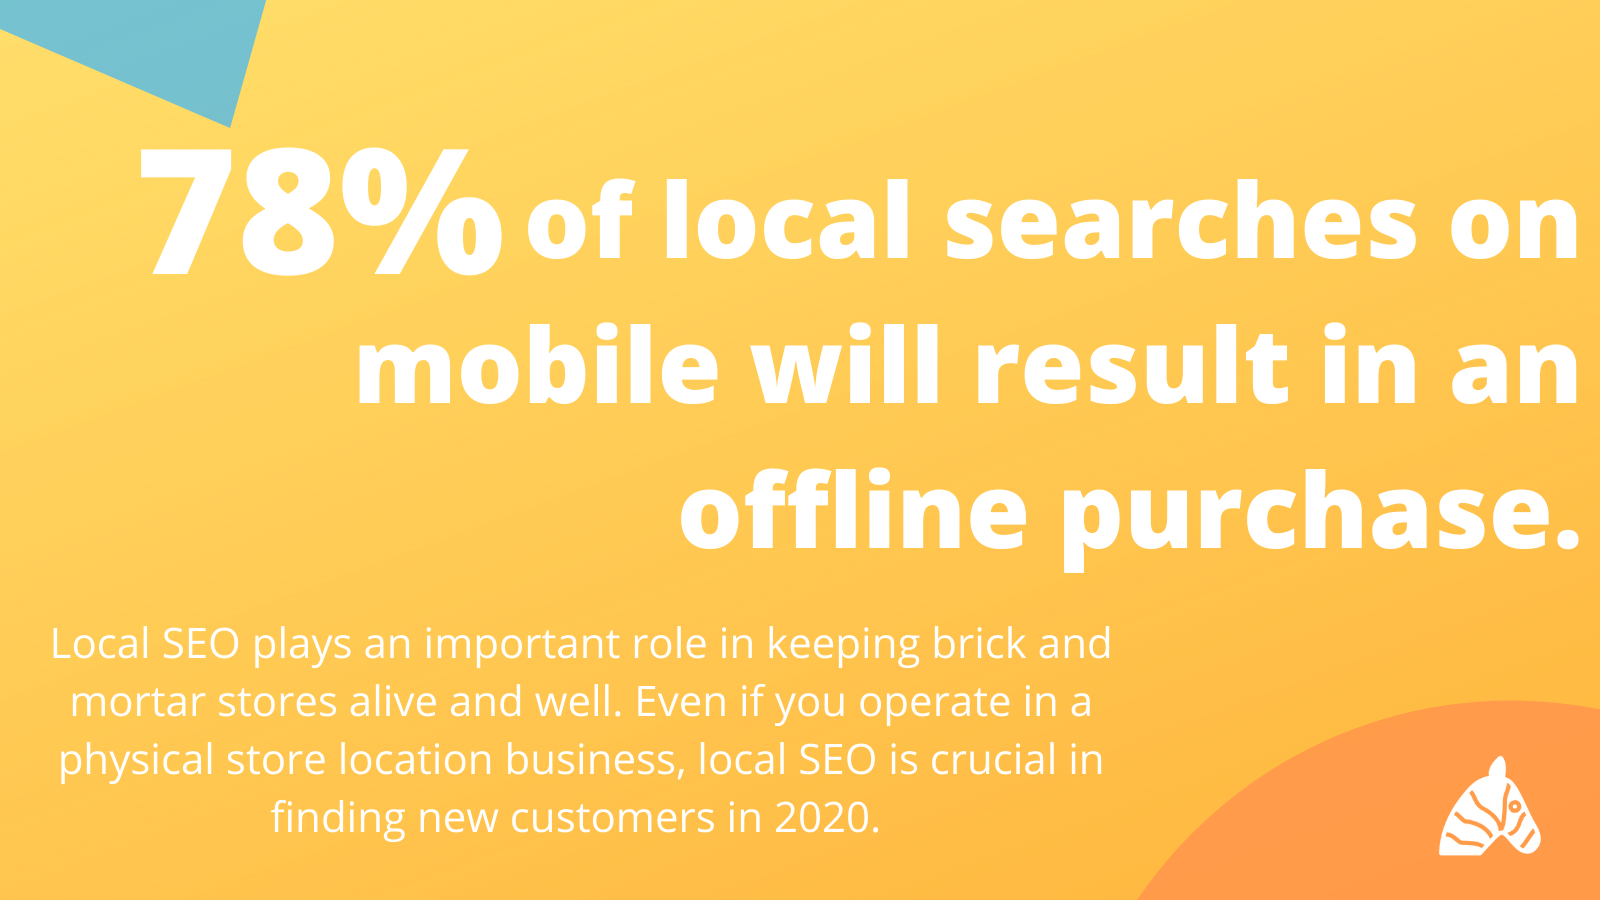 78% of local search on mobile will result in an offline purchase statistic